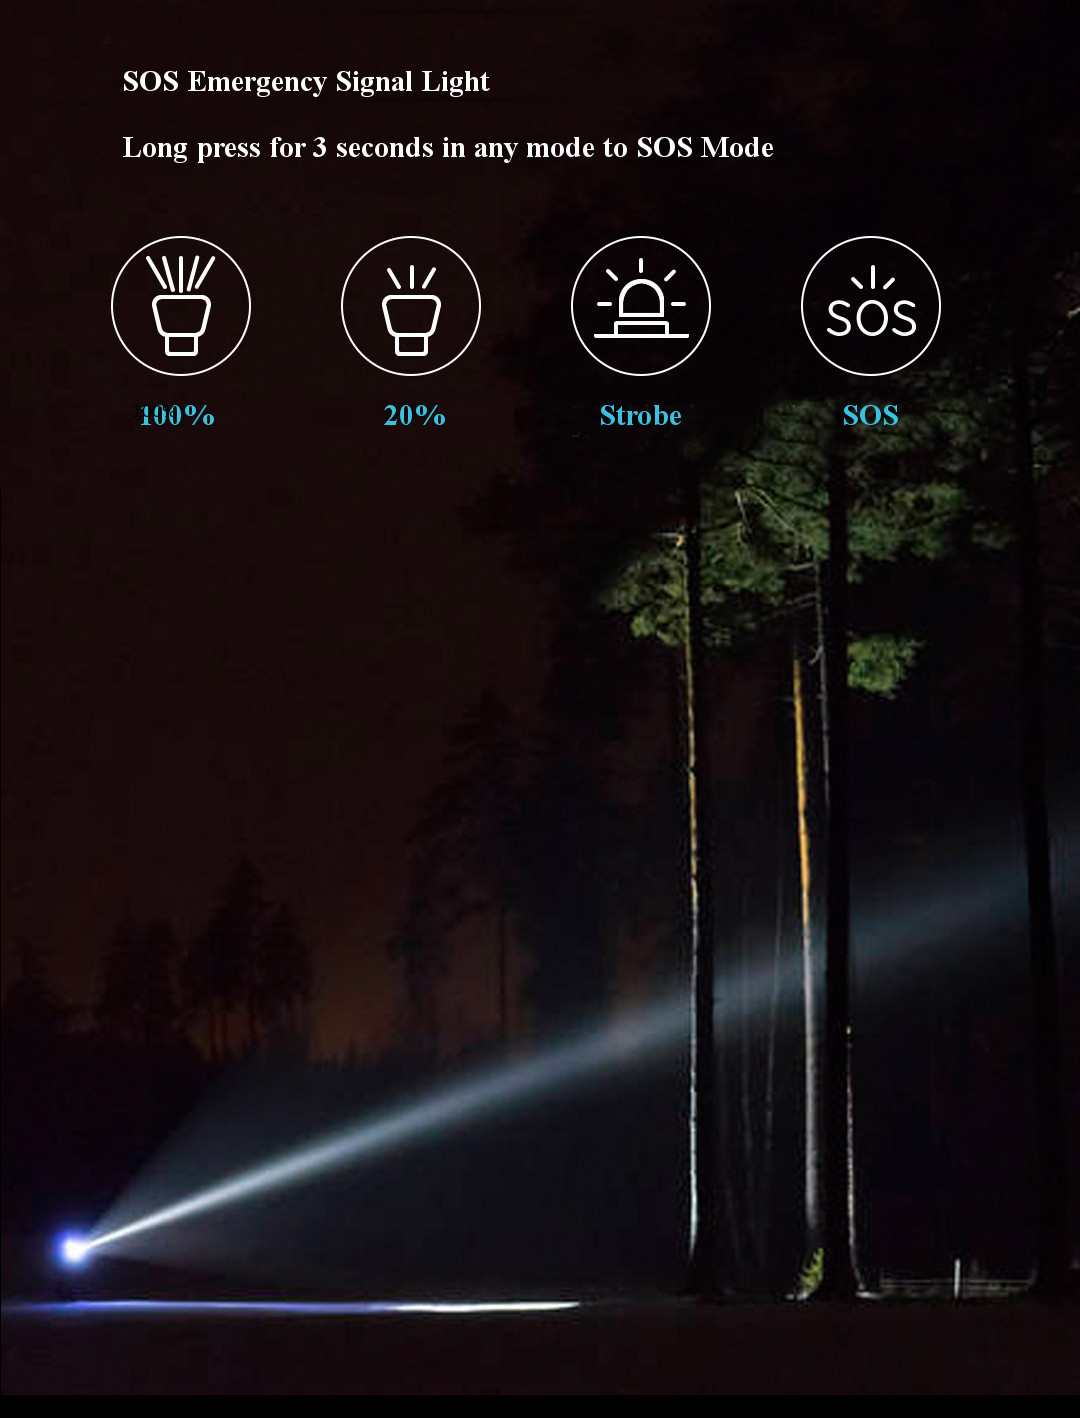 Nexiom Samsung LED Magnetic Flashlight 9600mah PowerBank From Xiaomi Youpin 6 Light Source USB Rechargeable Magnetic Work Light